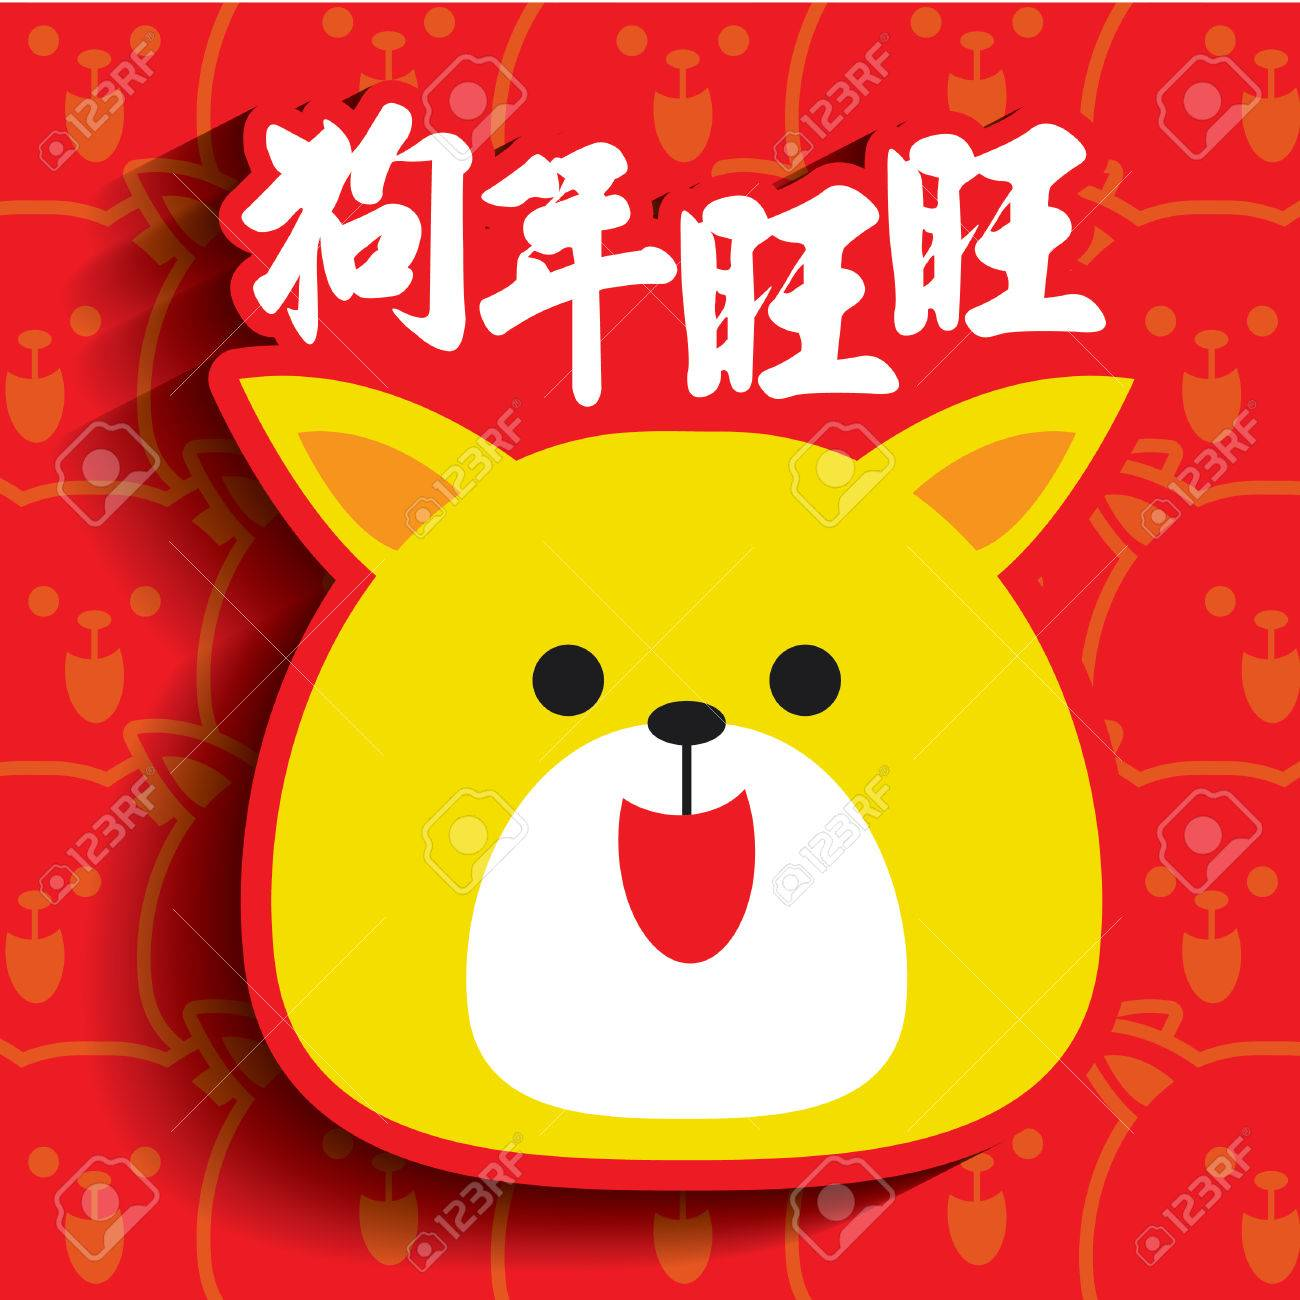 2018 chinese new year greeting card illustration of dog puppy 2018 chinese new year greeting card illustration of dog puppy caption m4hsunfo